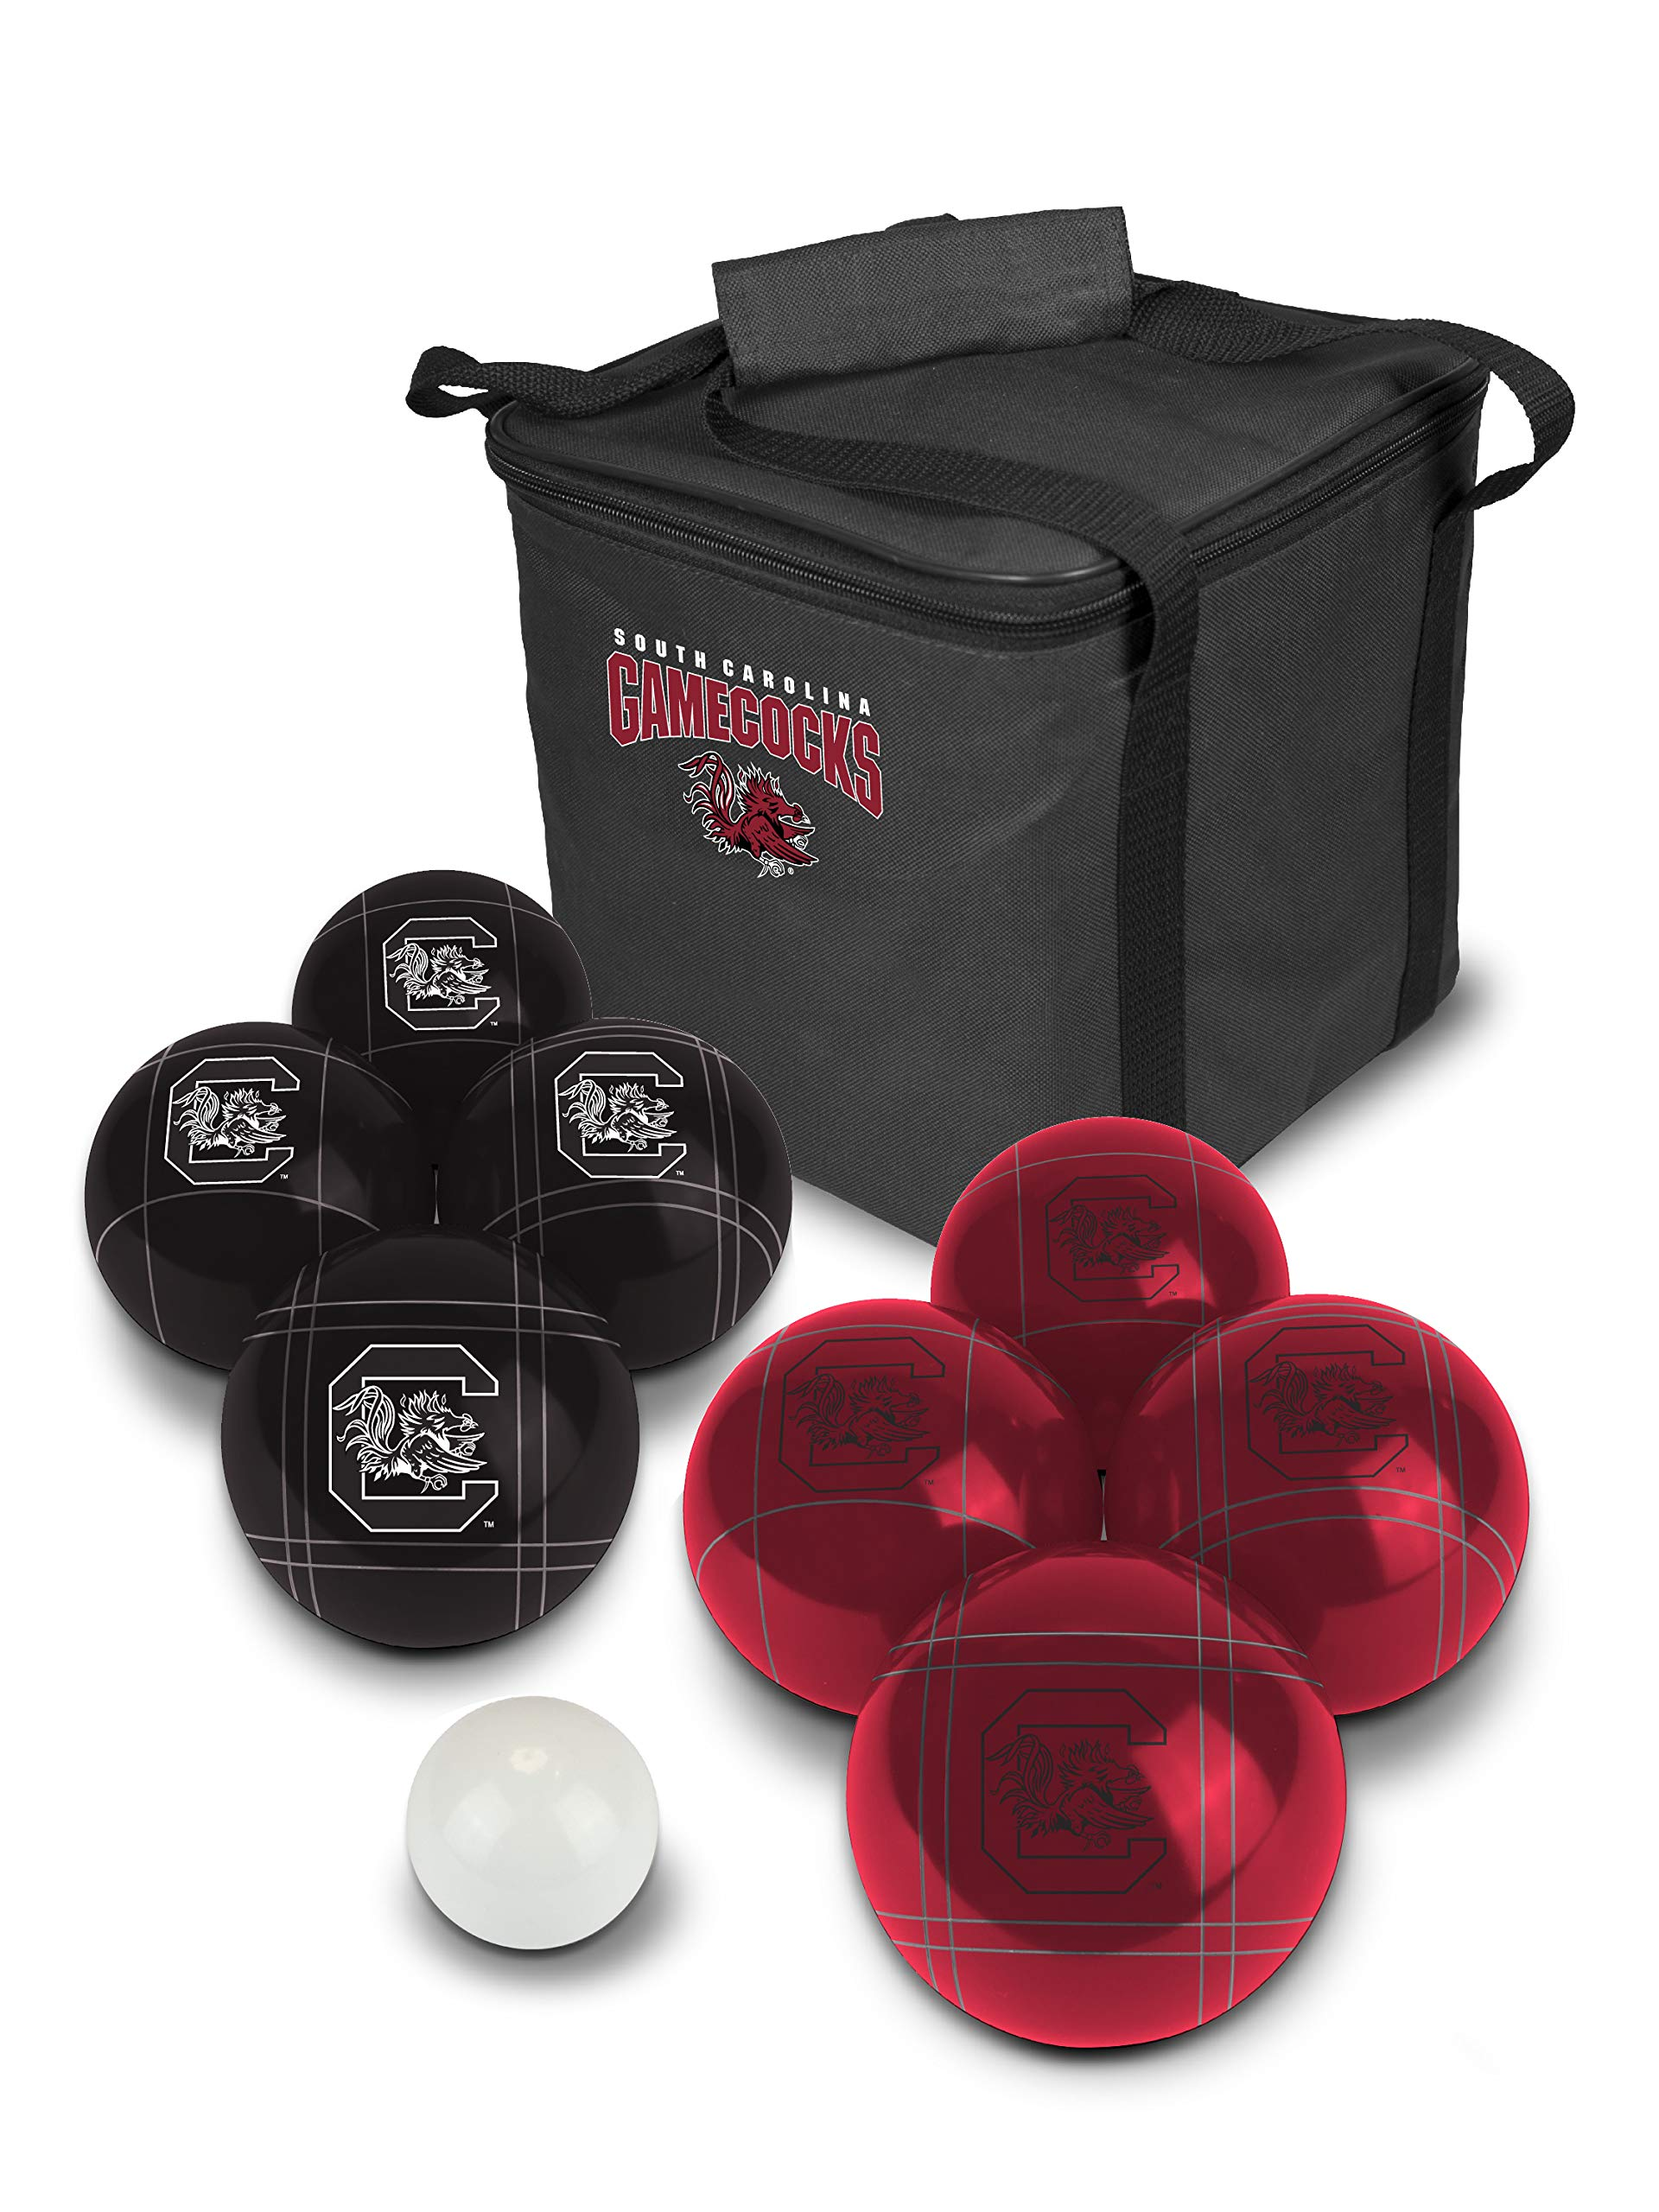 PROLINE NCAA College South Carolina Gamecocks Bocce Ball Set, Multicolor by PROLINE